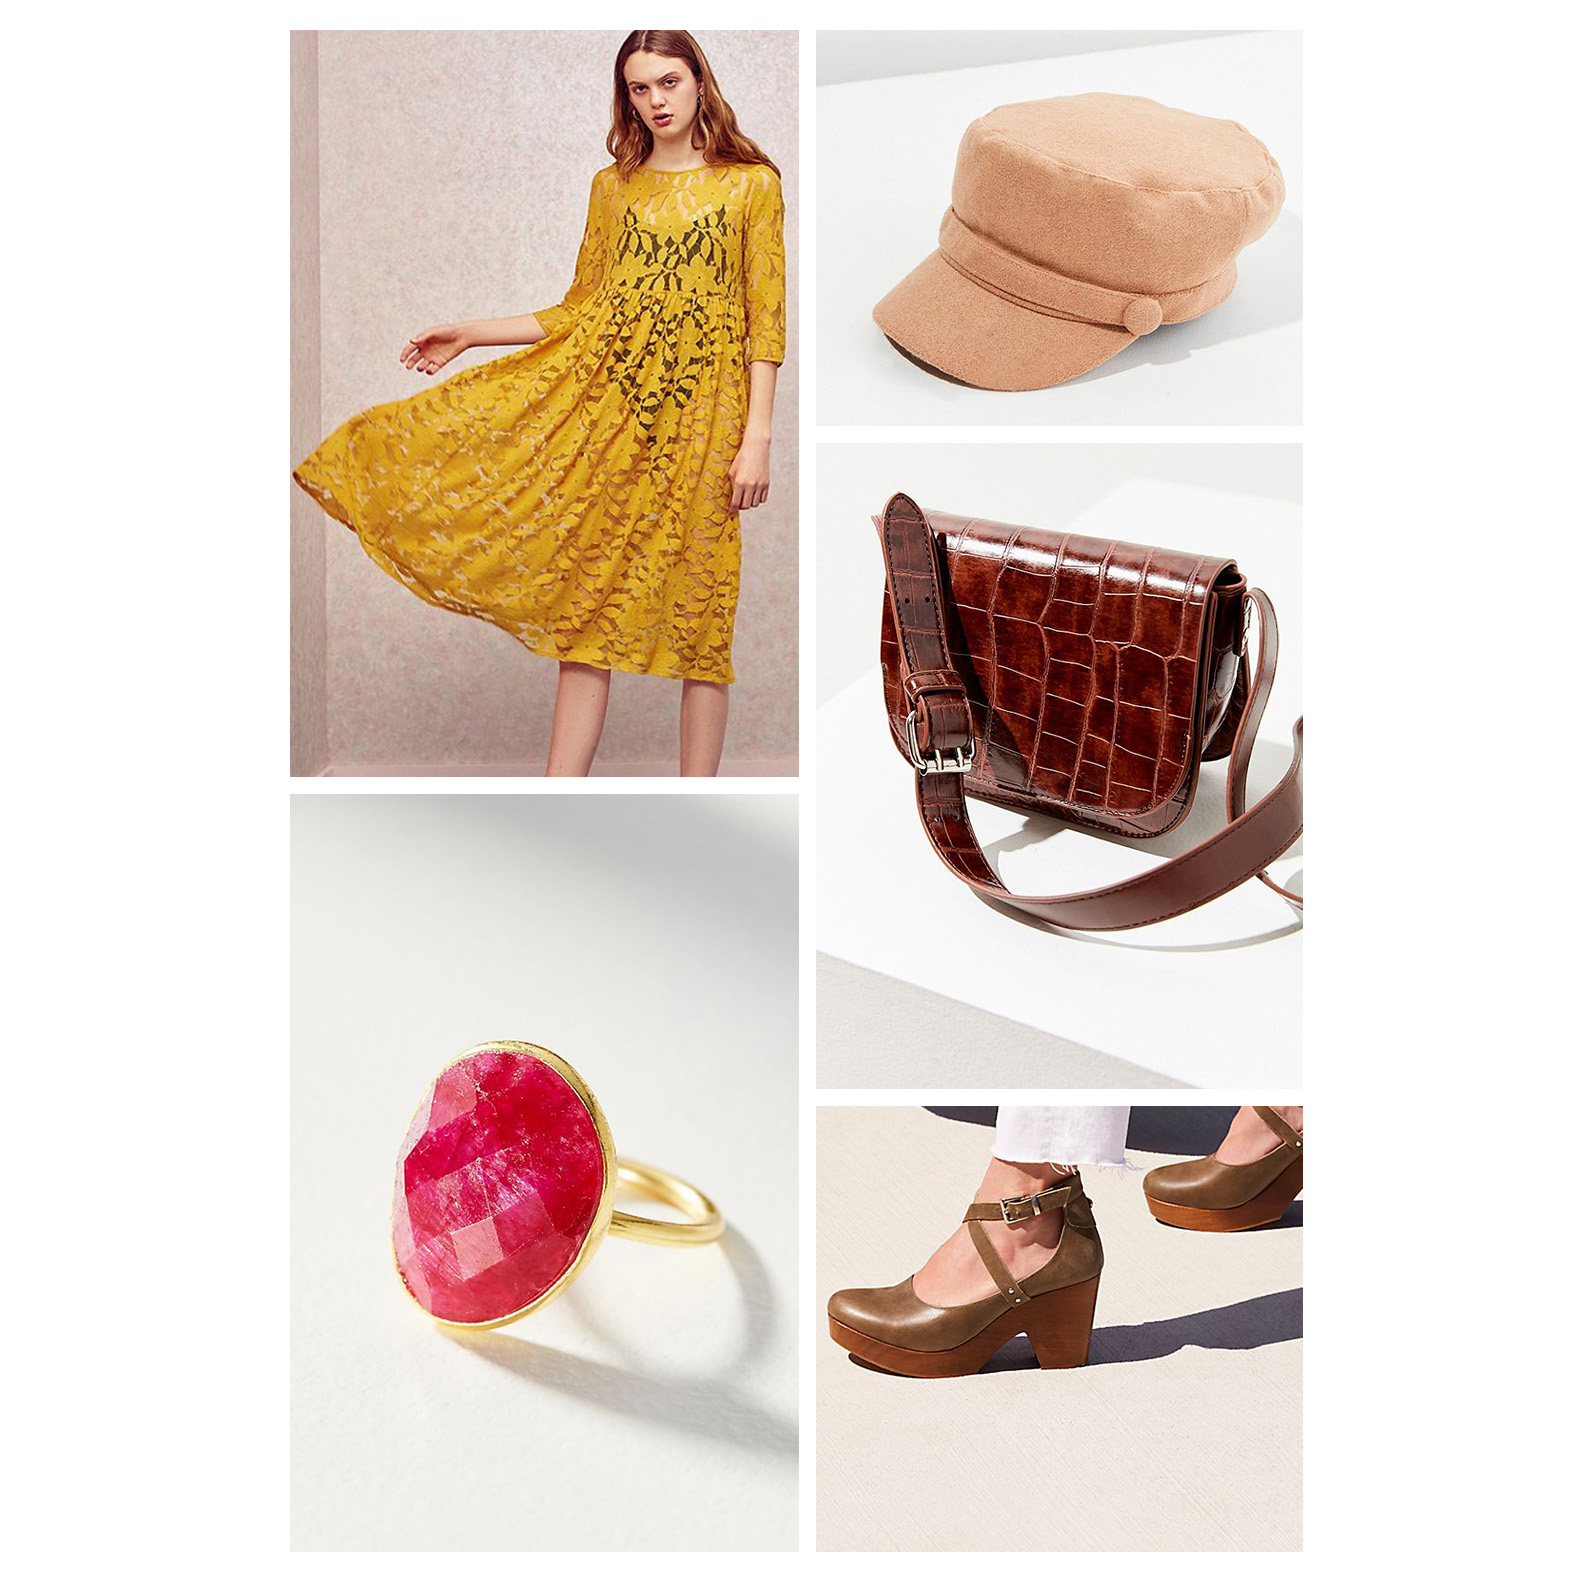 Fall lunch outfit idea - wear a yellow lace midi dress, brown leather bag, newsboy cap, red stone ring, and cute clogs!